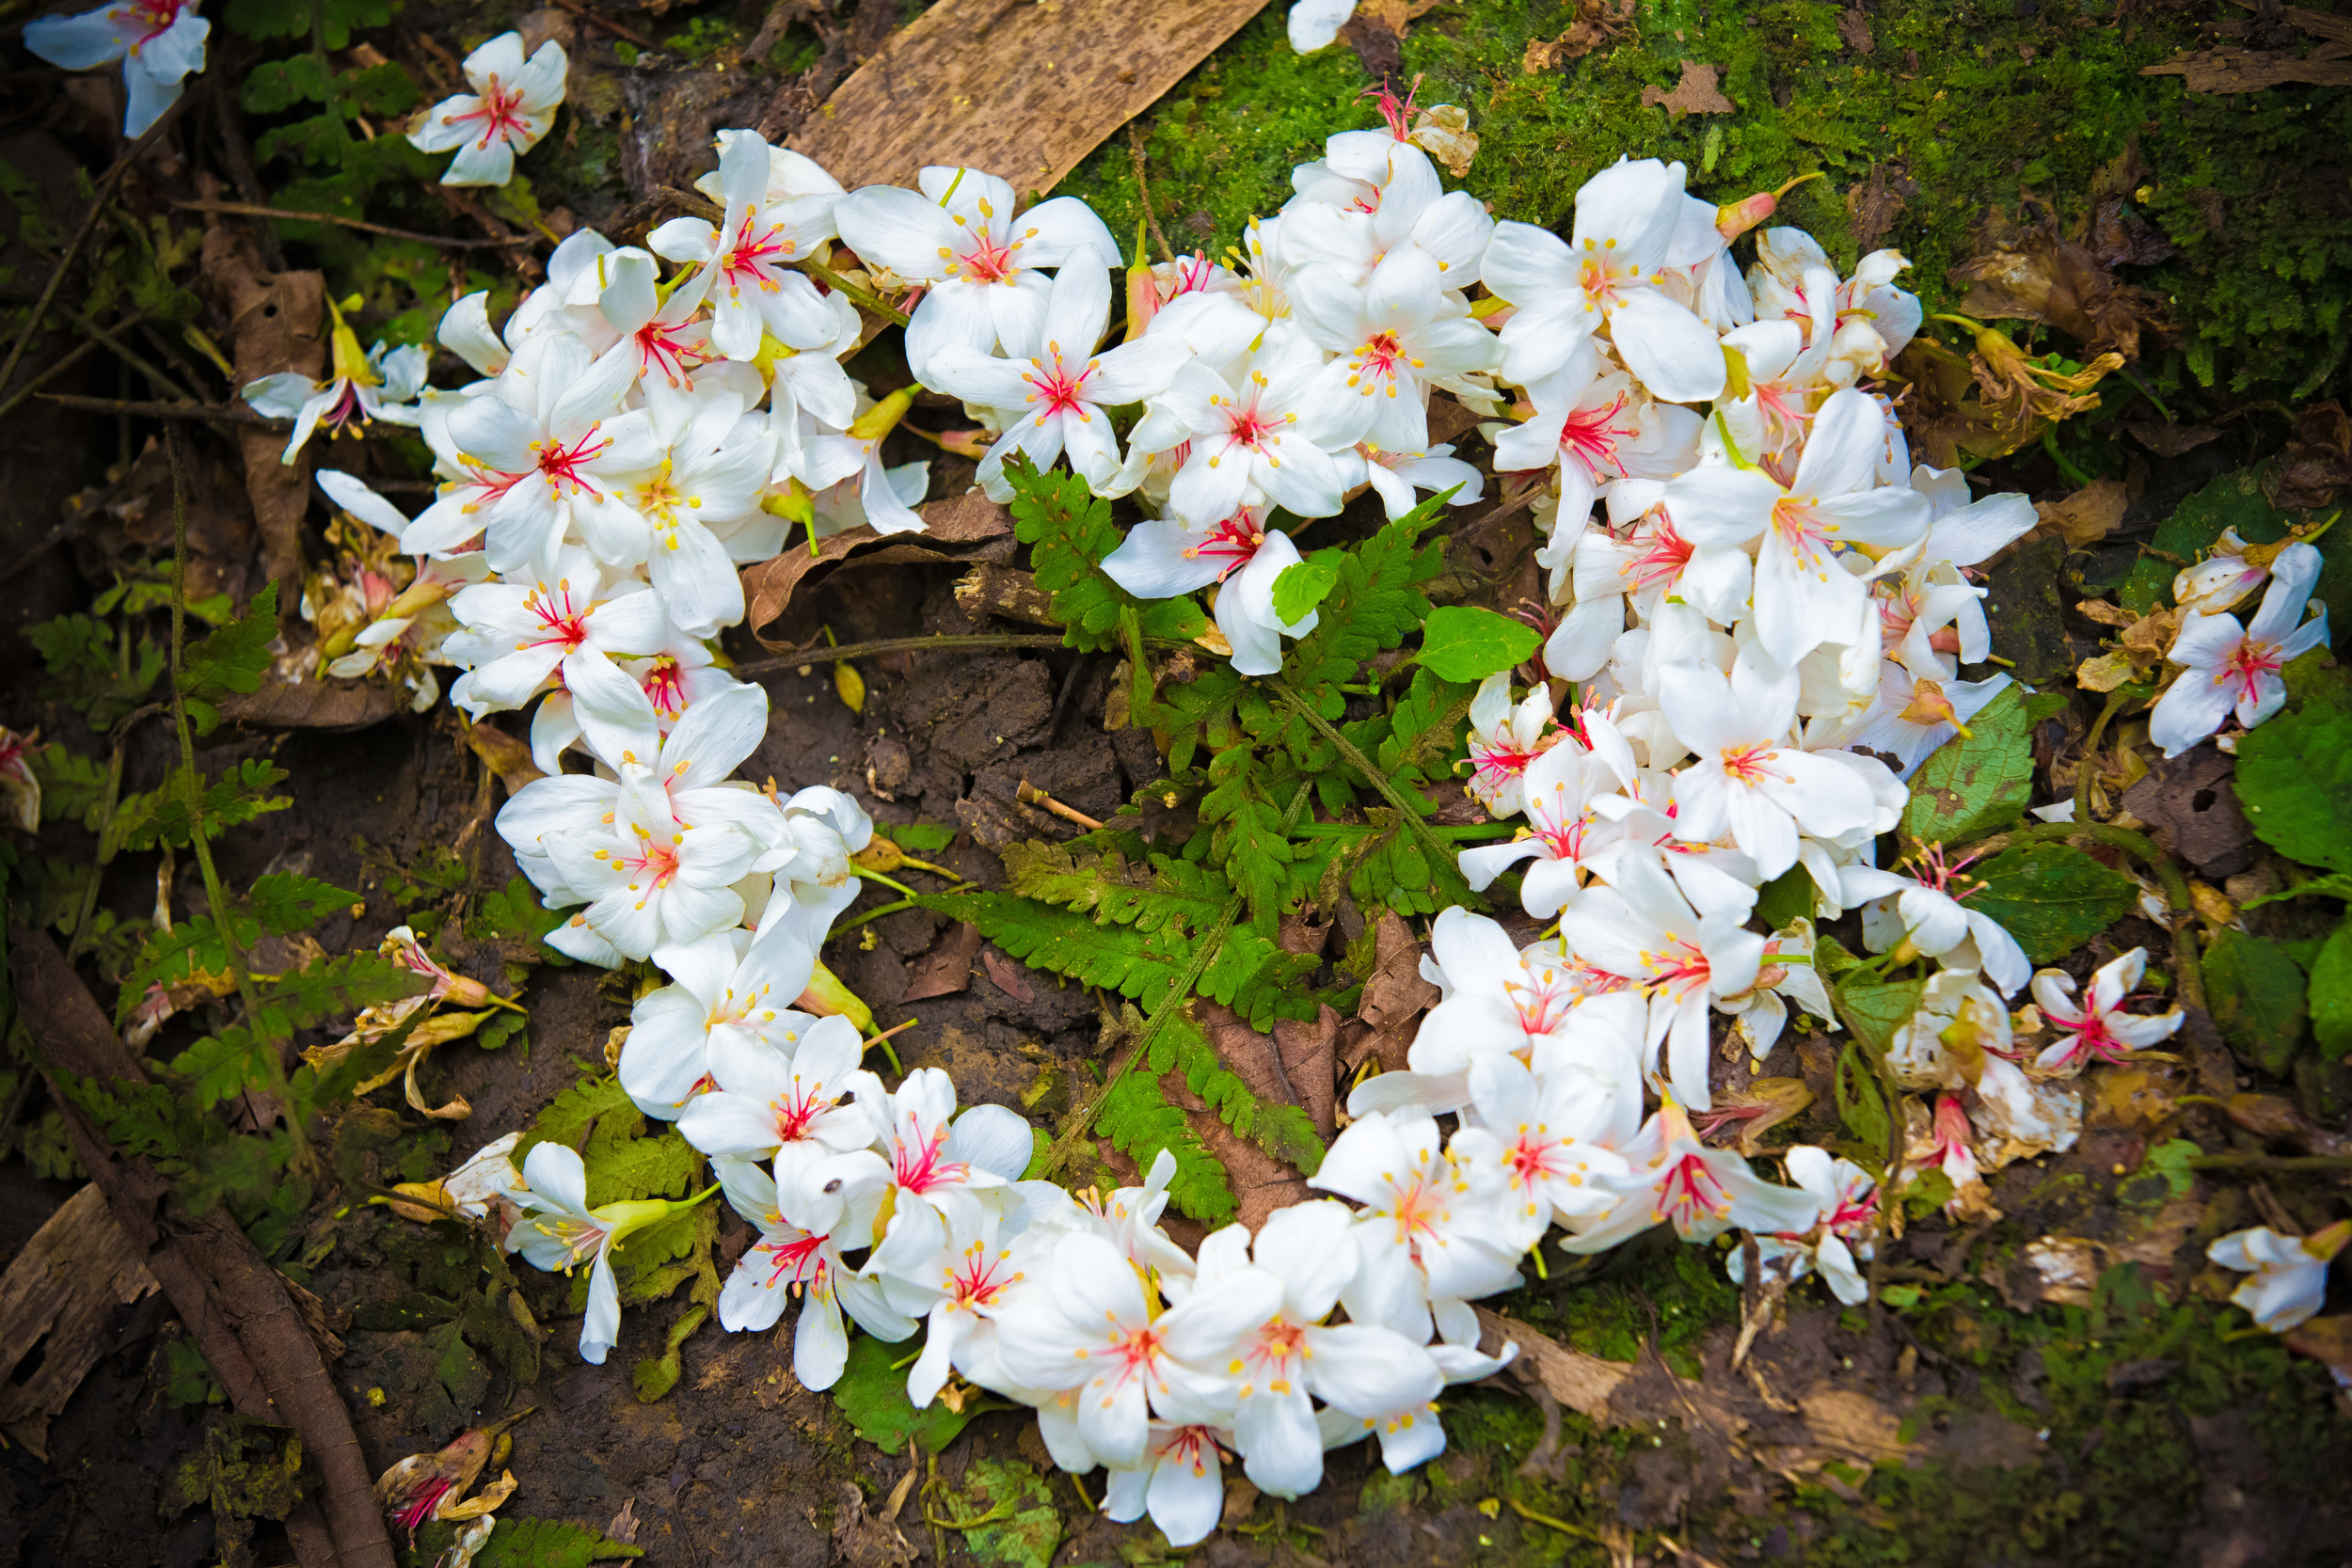 Cute! Tung Blossoms arranged in the shape of a heart.